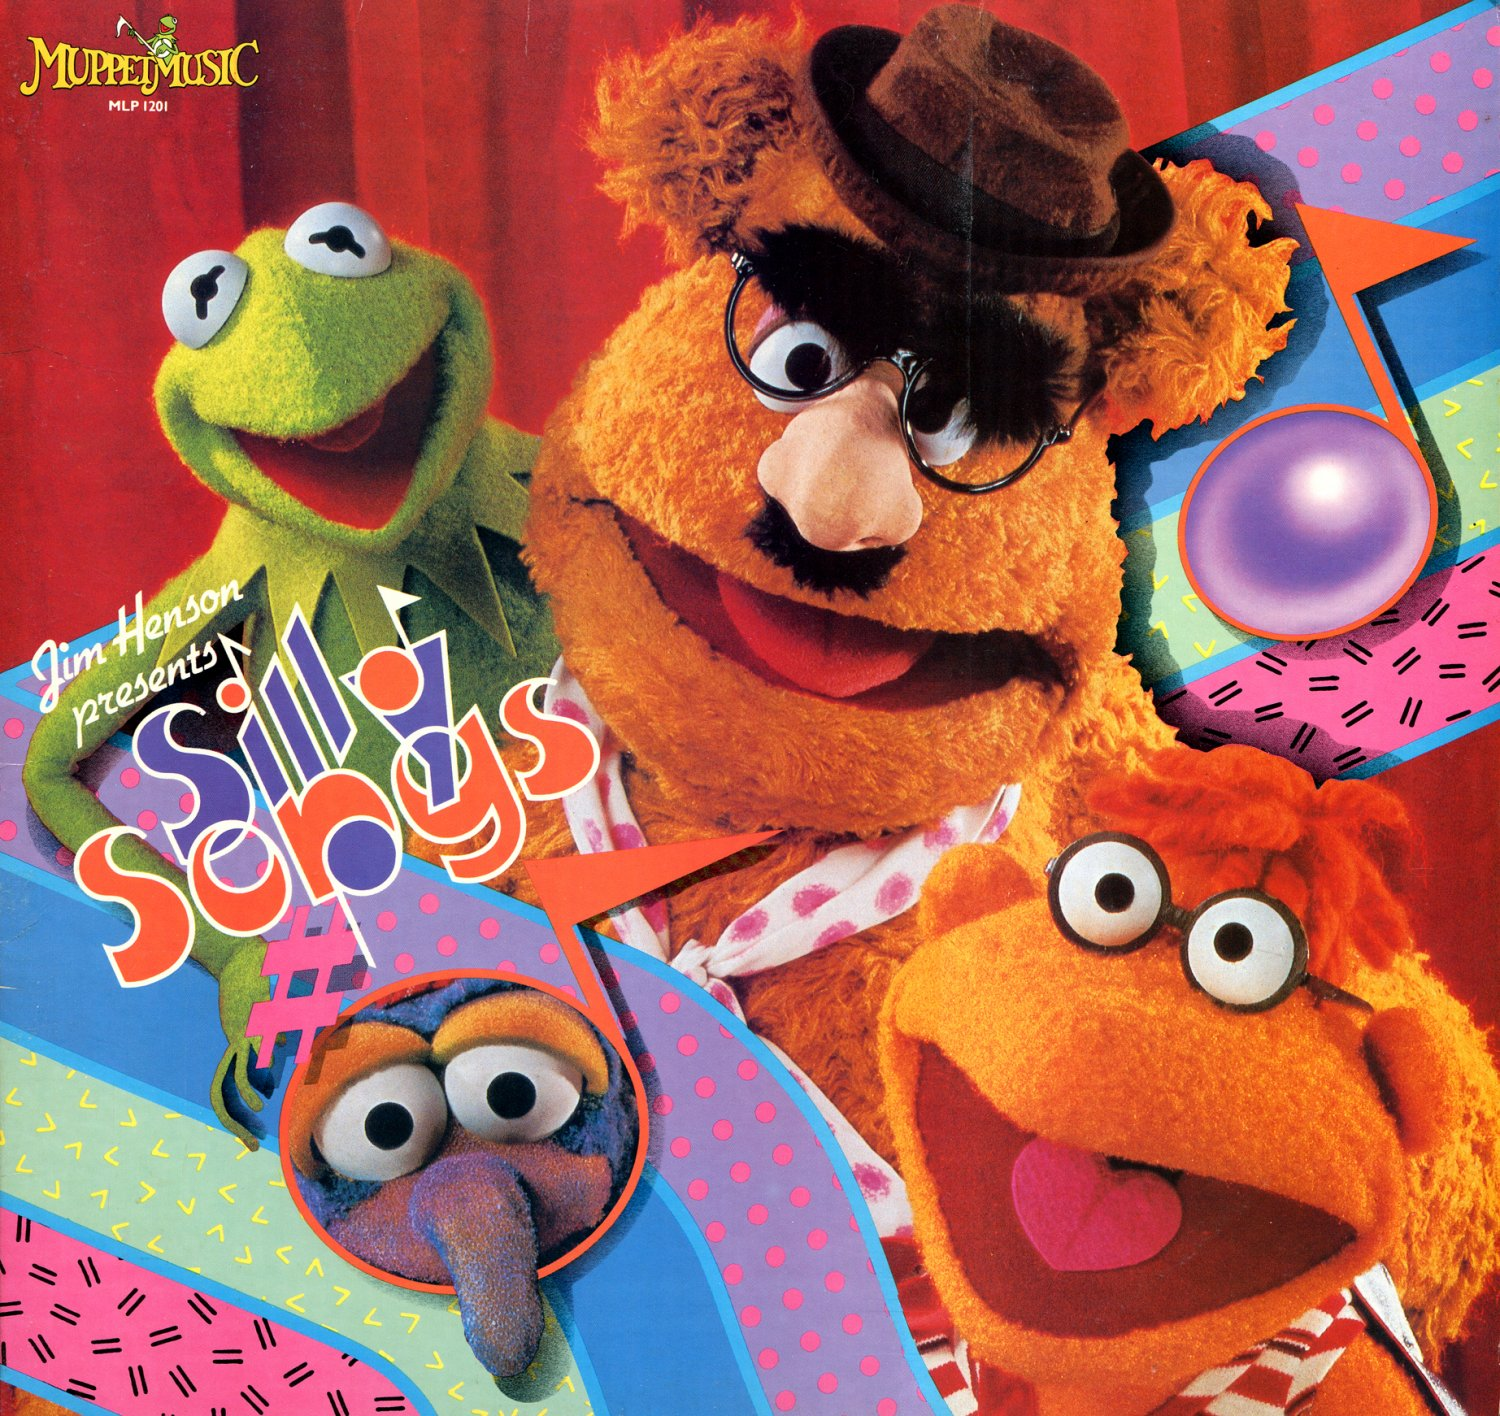 Jim Henson presents Silly Songs from The Muppet Show - Original Soundtrack LP/CD